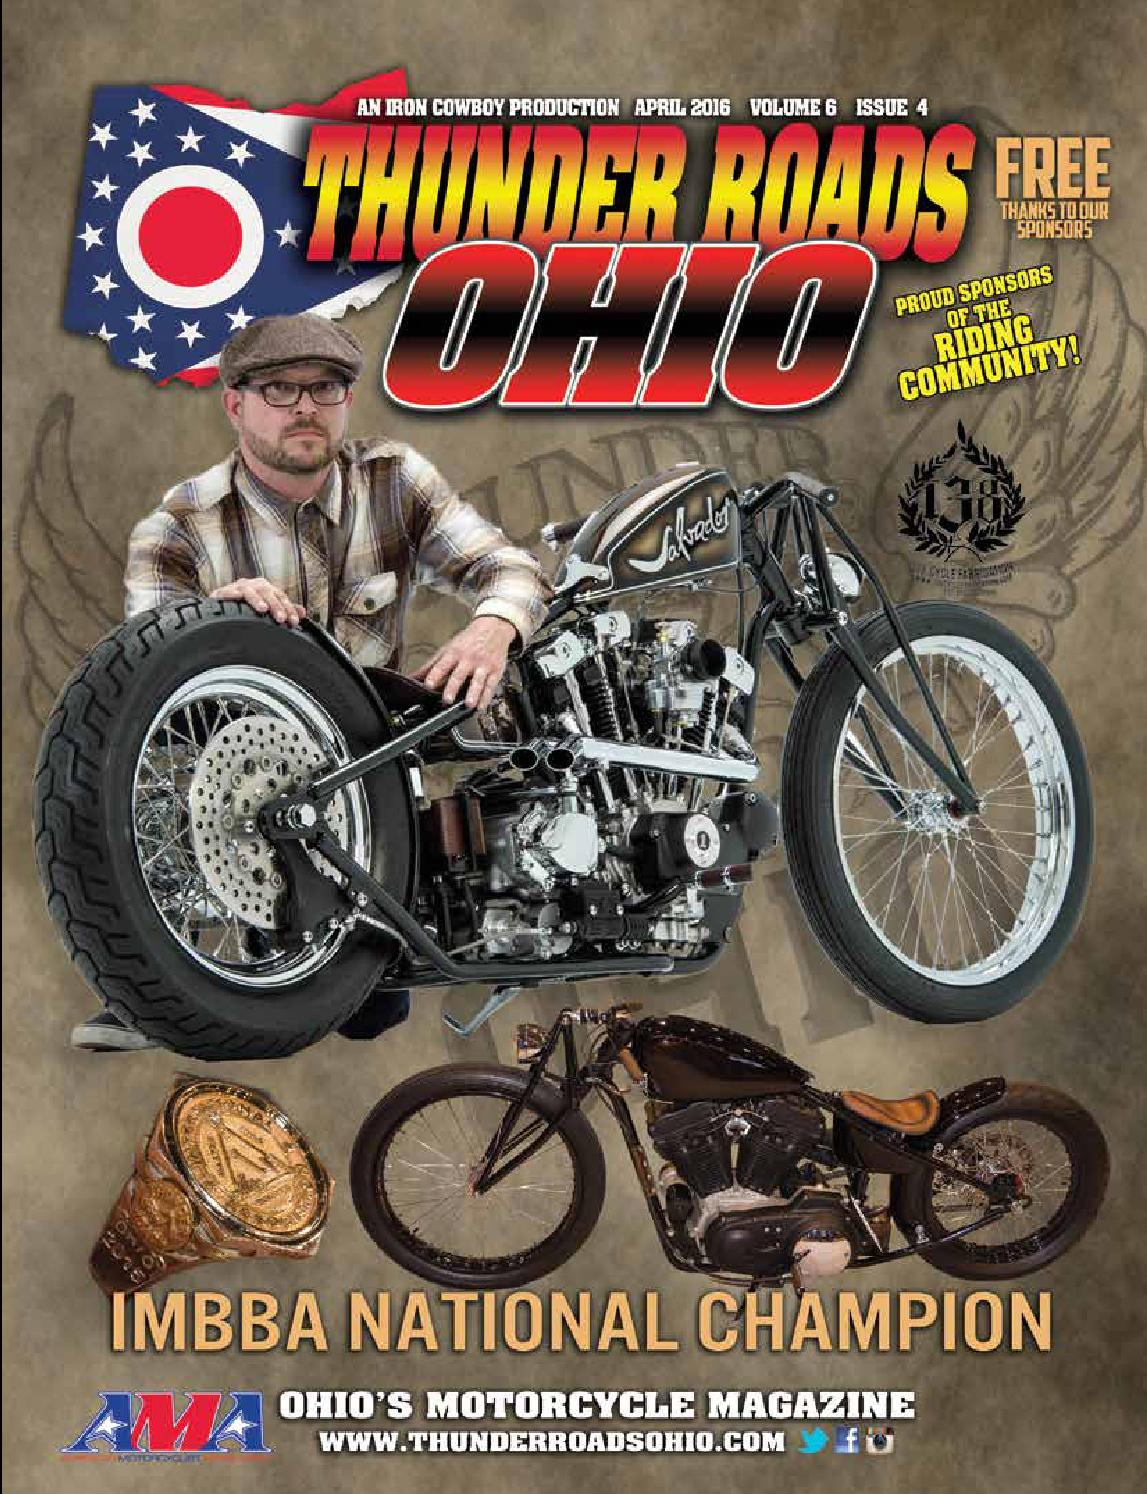 thunder roads ohio by thunder roads ohio magazine issuu thunder roads ohio 2016